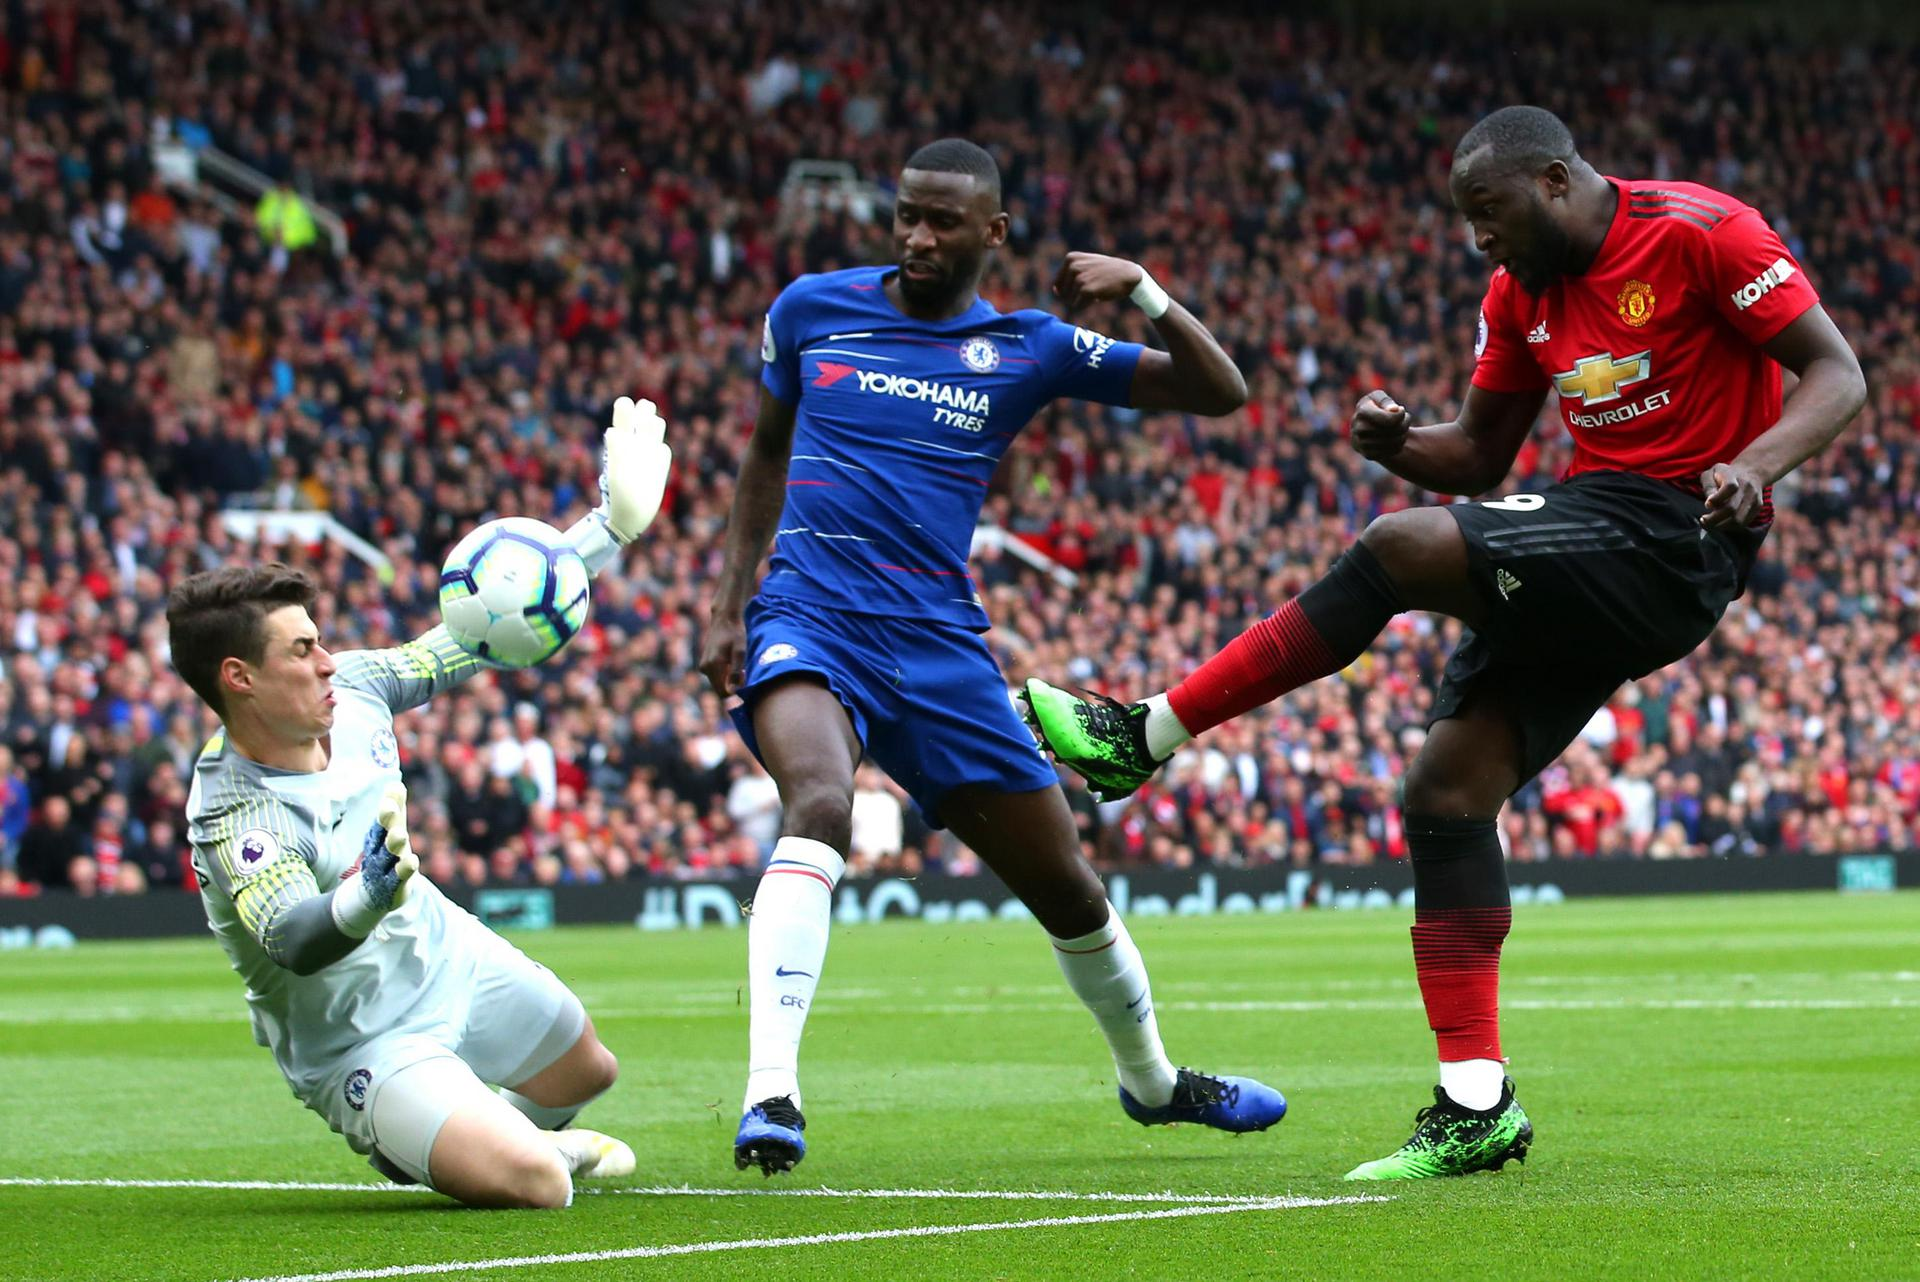 Romelu Lukaku's shot is saved by Kepa Arrizabalaga